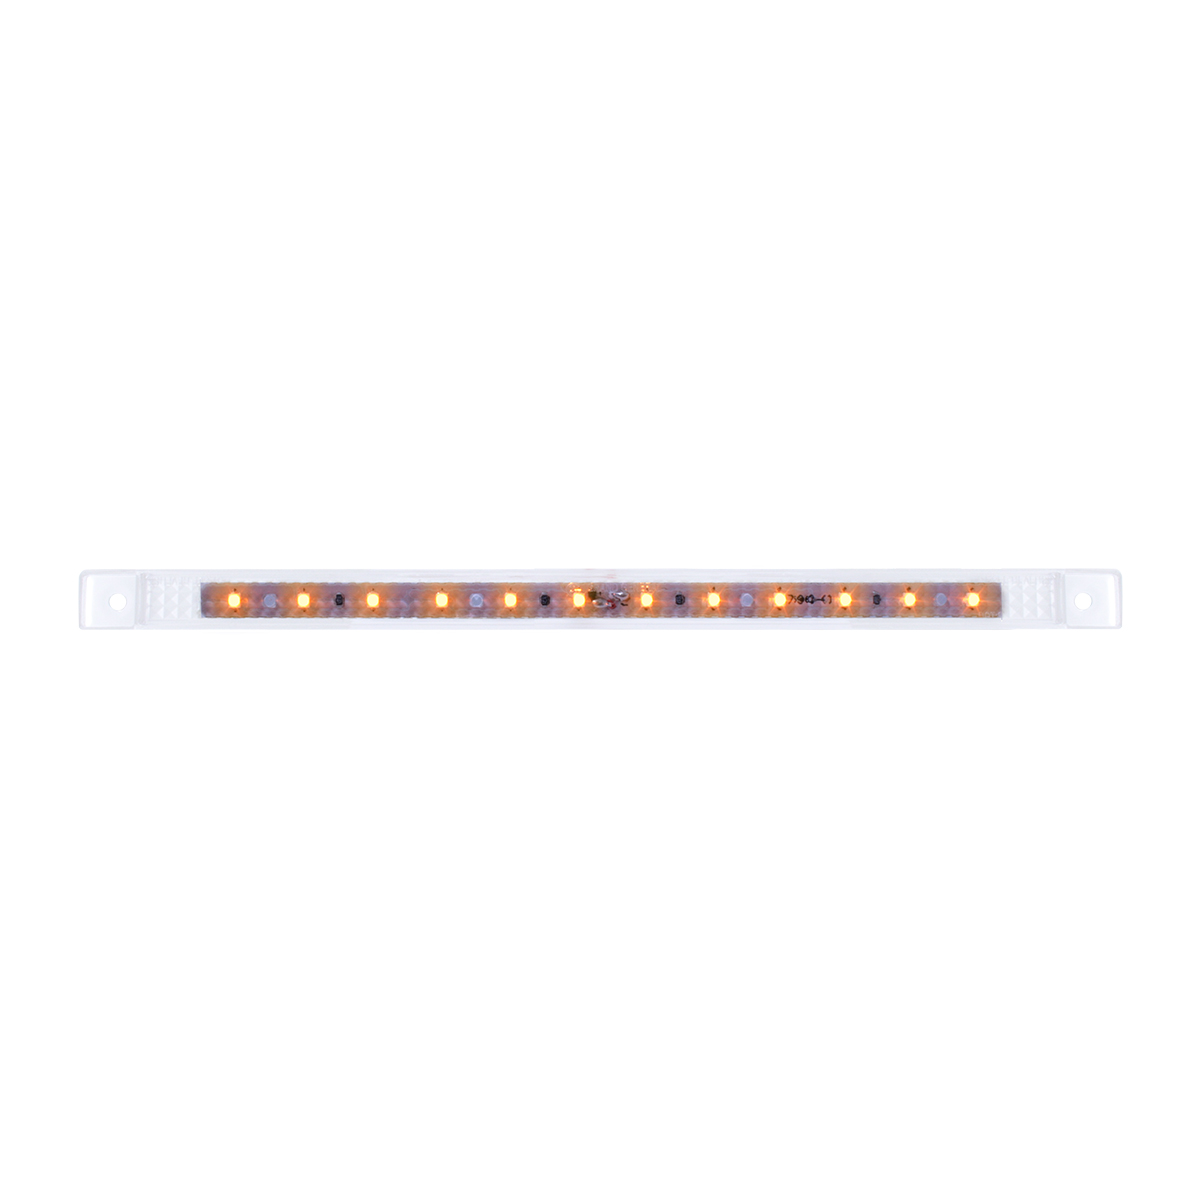 "75961 10-1/8"" Ultra Thin LED Marker Light in Clear Lens"